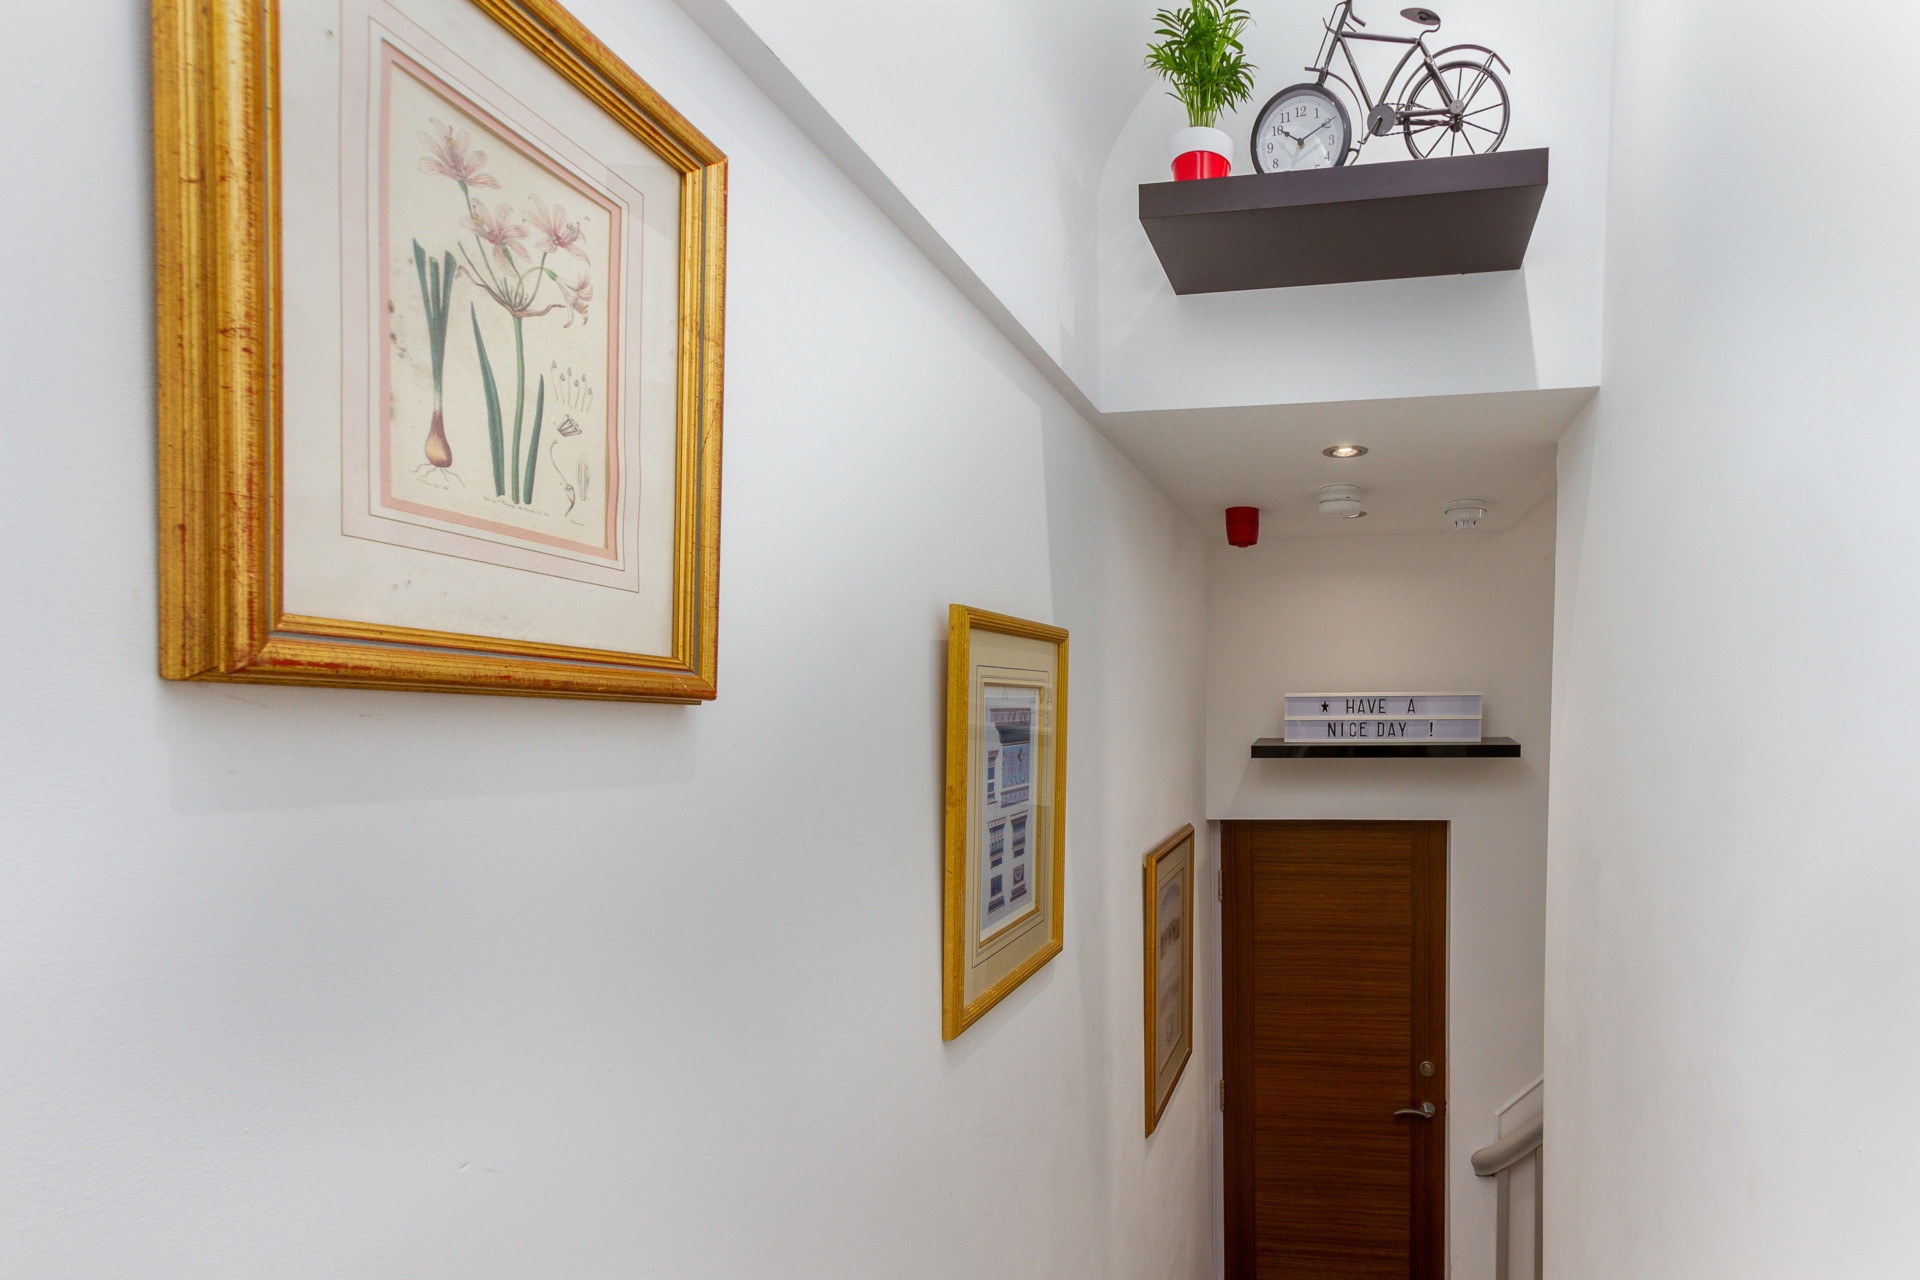 Internal hallway and apartment exit